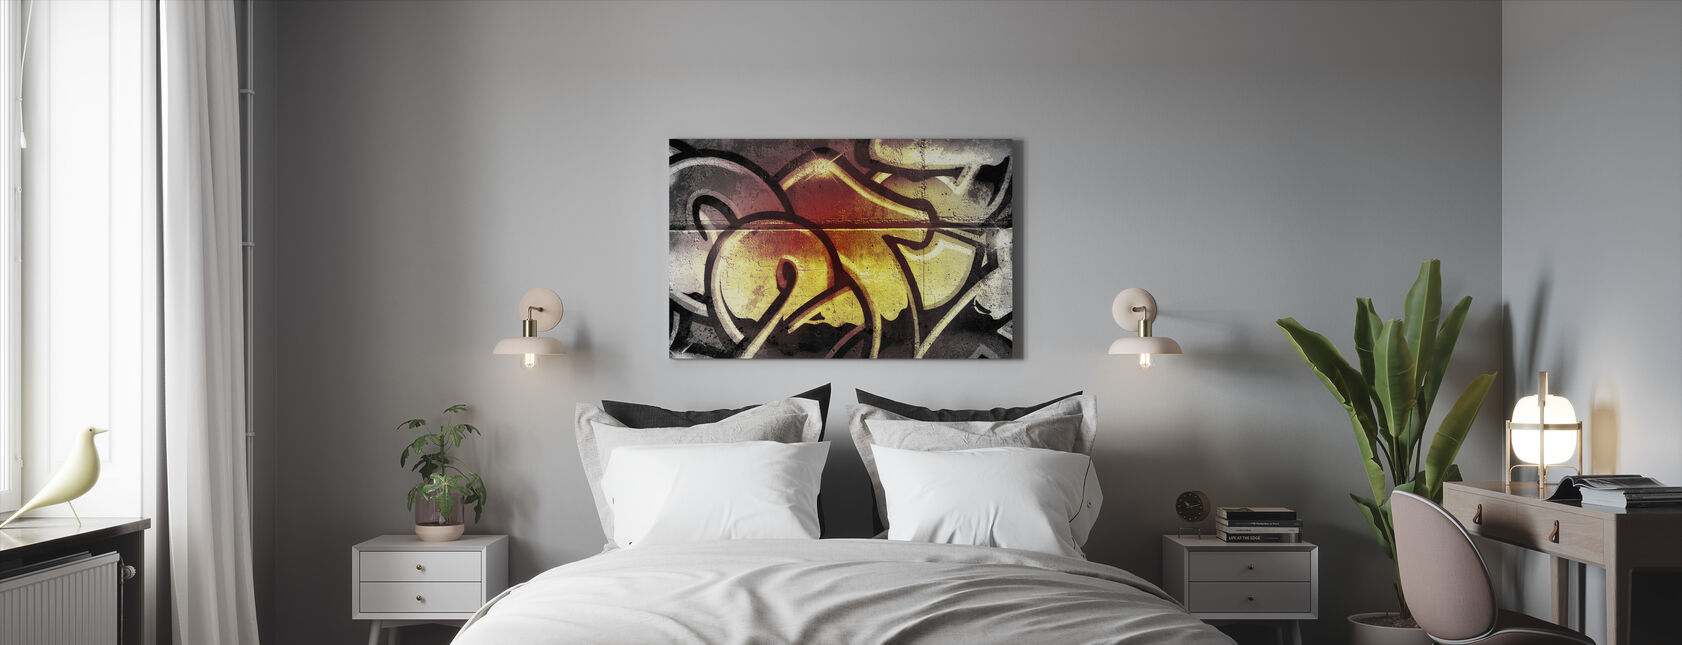 Golden Graffiti - Canvas print - Bedroom